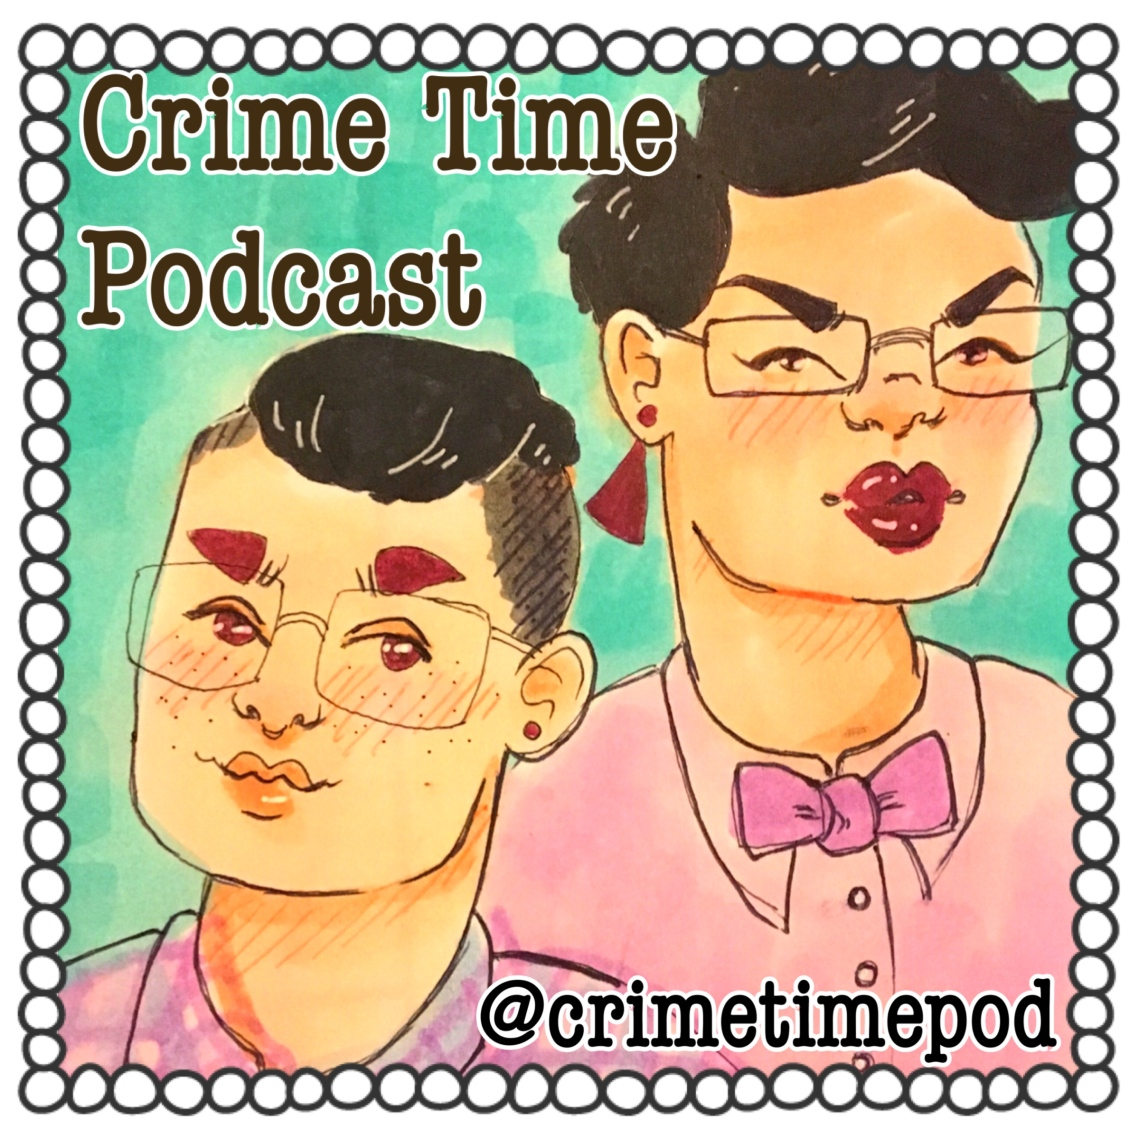 CrimeTimePodcastArt6